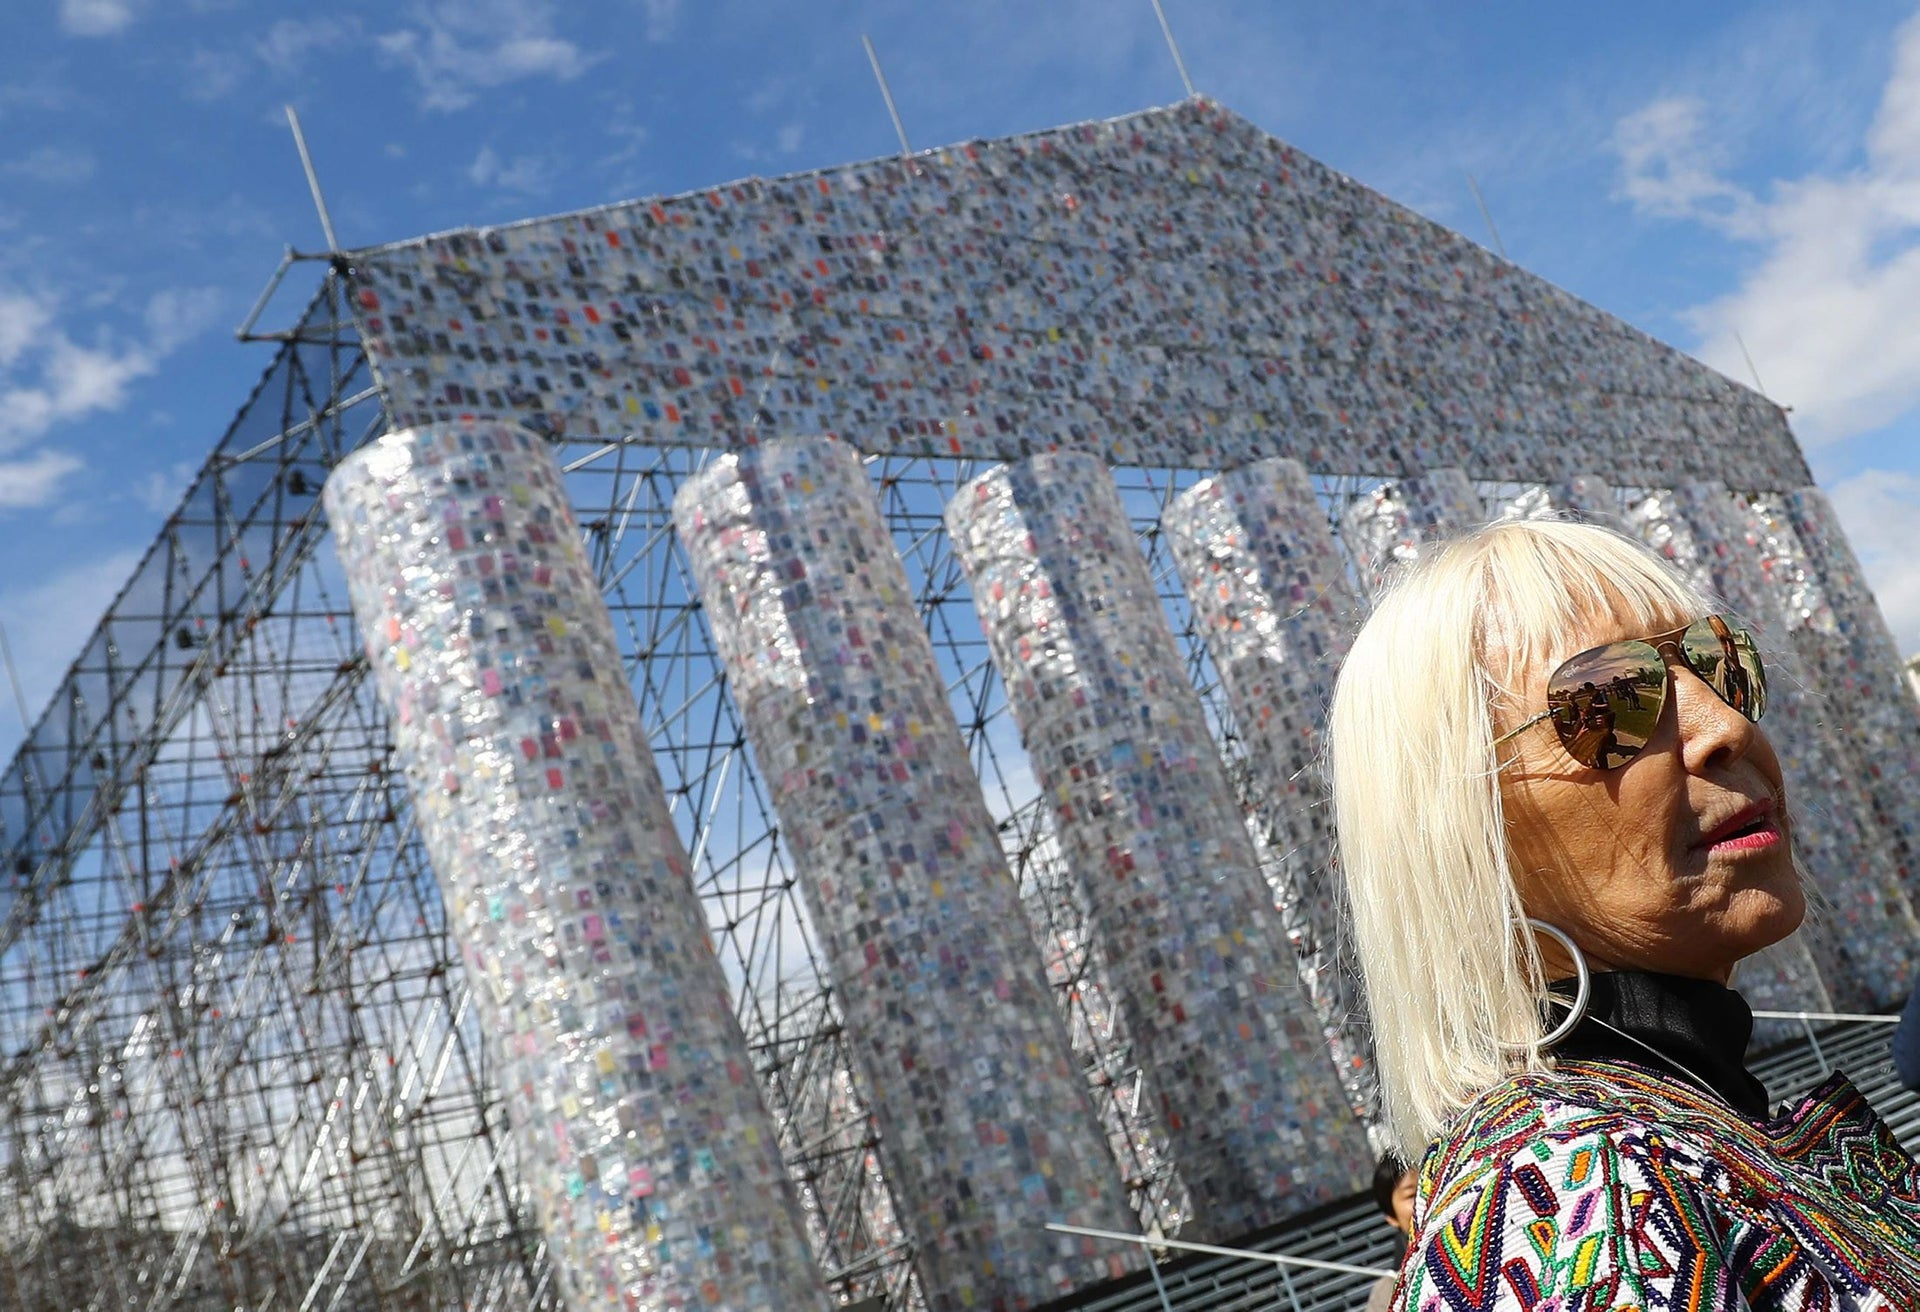 """Artist Marta Minujin poses in front of her art project """"Temple of books"""" ahead of the opening of Germany's biggest art fair """"Documenta 14"""" in Kassel, Germany, June 7, 2017."""